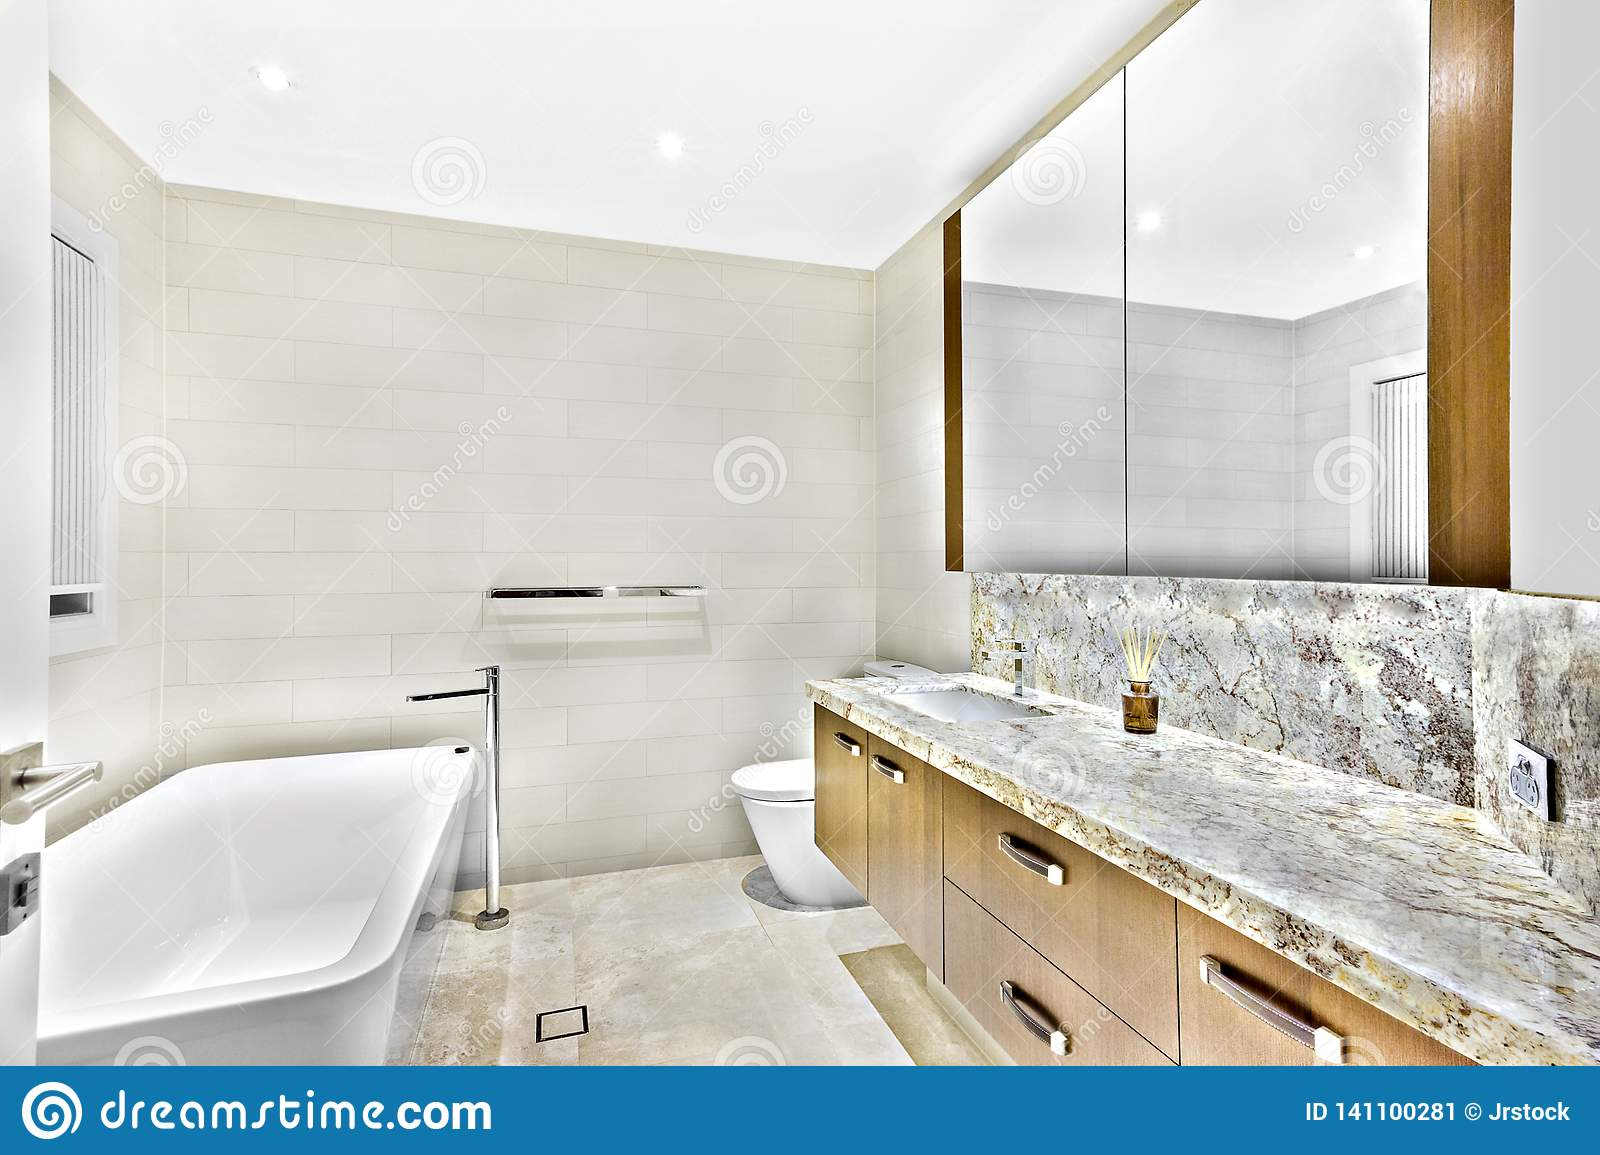 Colorful Wash Room With Bath Tub And Mirrors Stock Image Image Of Contemporary Ceiling 141100281